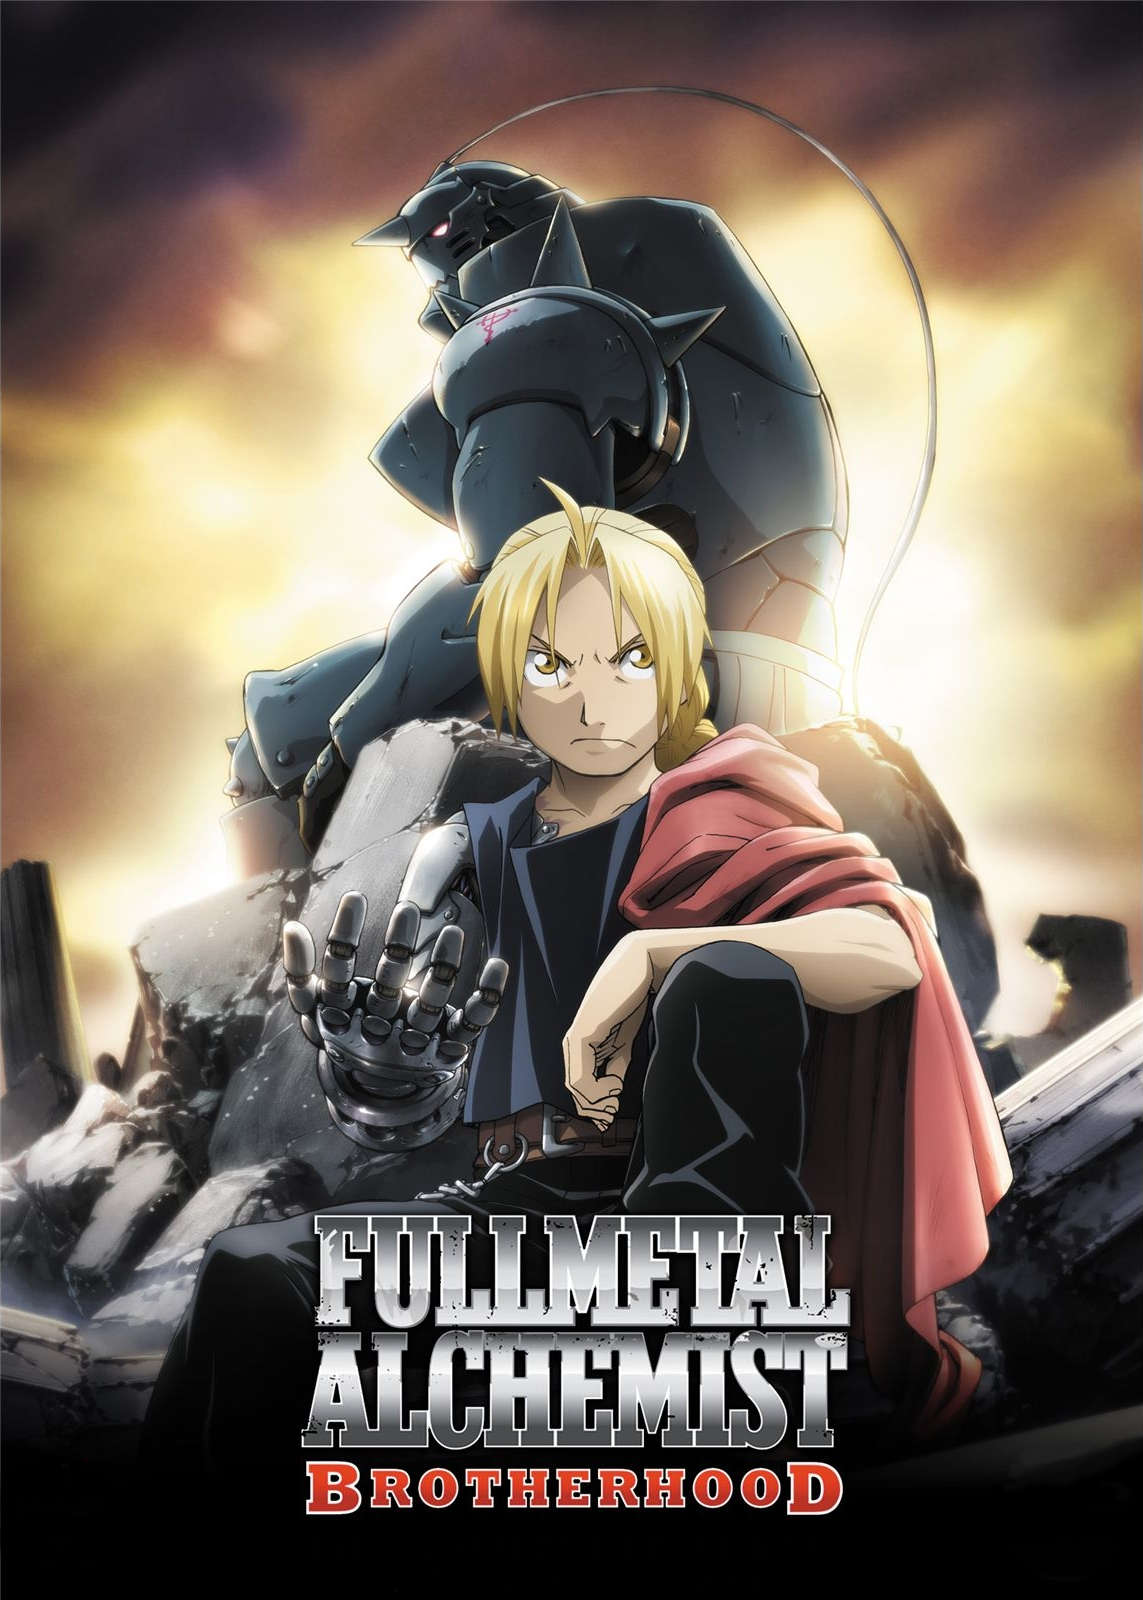 Fullmetal Alchemist Brotherhood Anime Japanese Popular Media